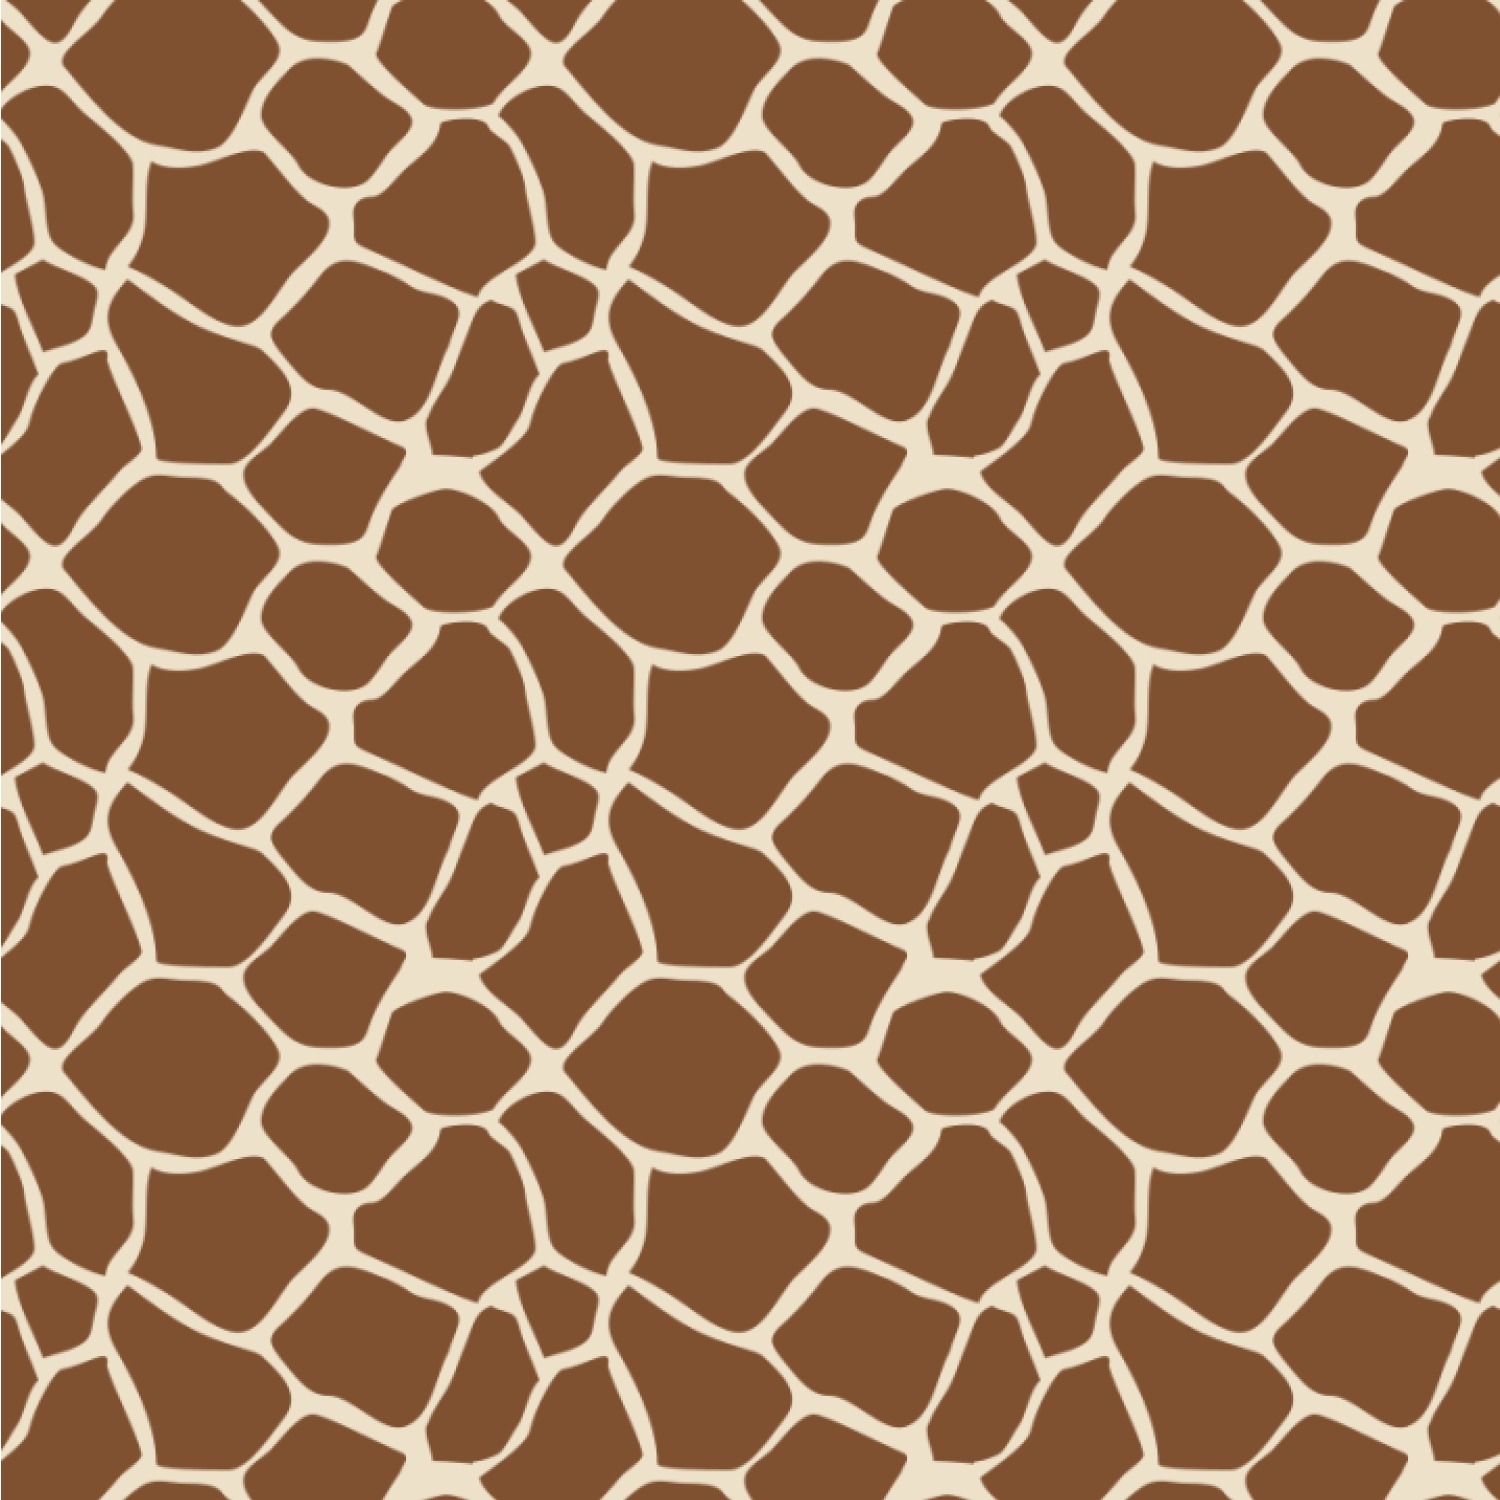 Giraffe Print Wallpaper Amp Surface Covering Youcustomizeit